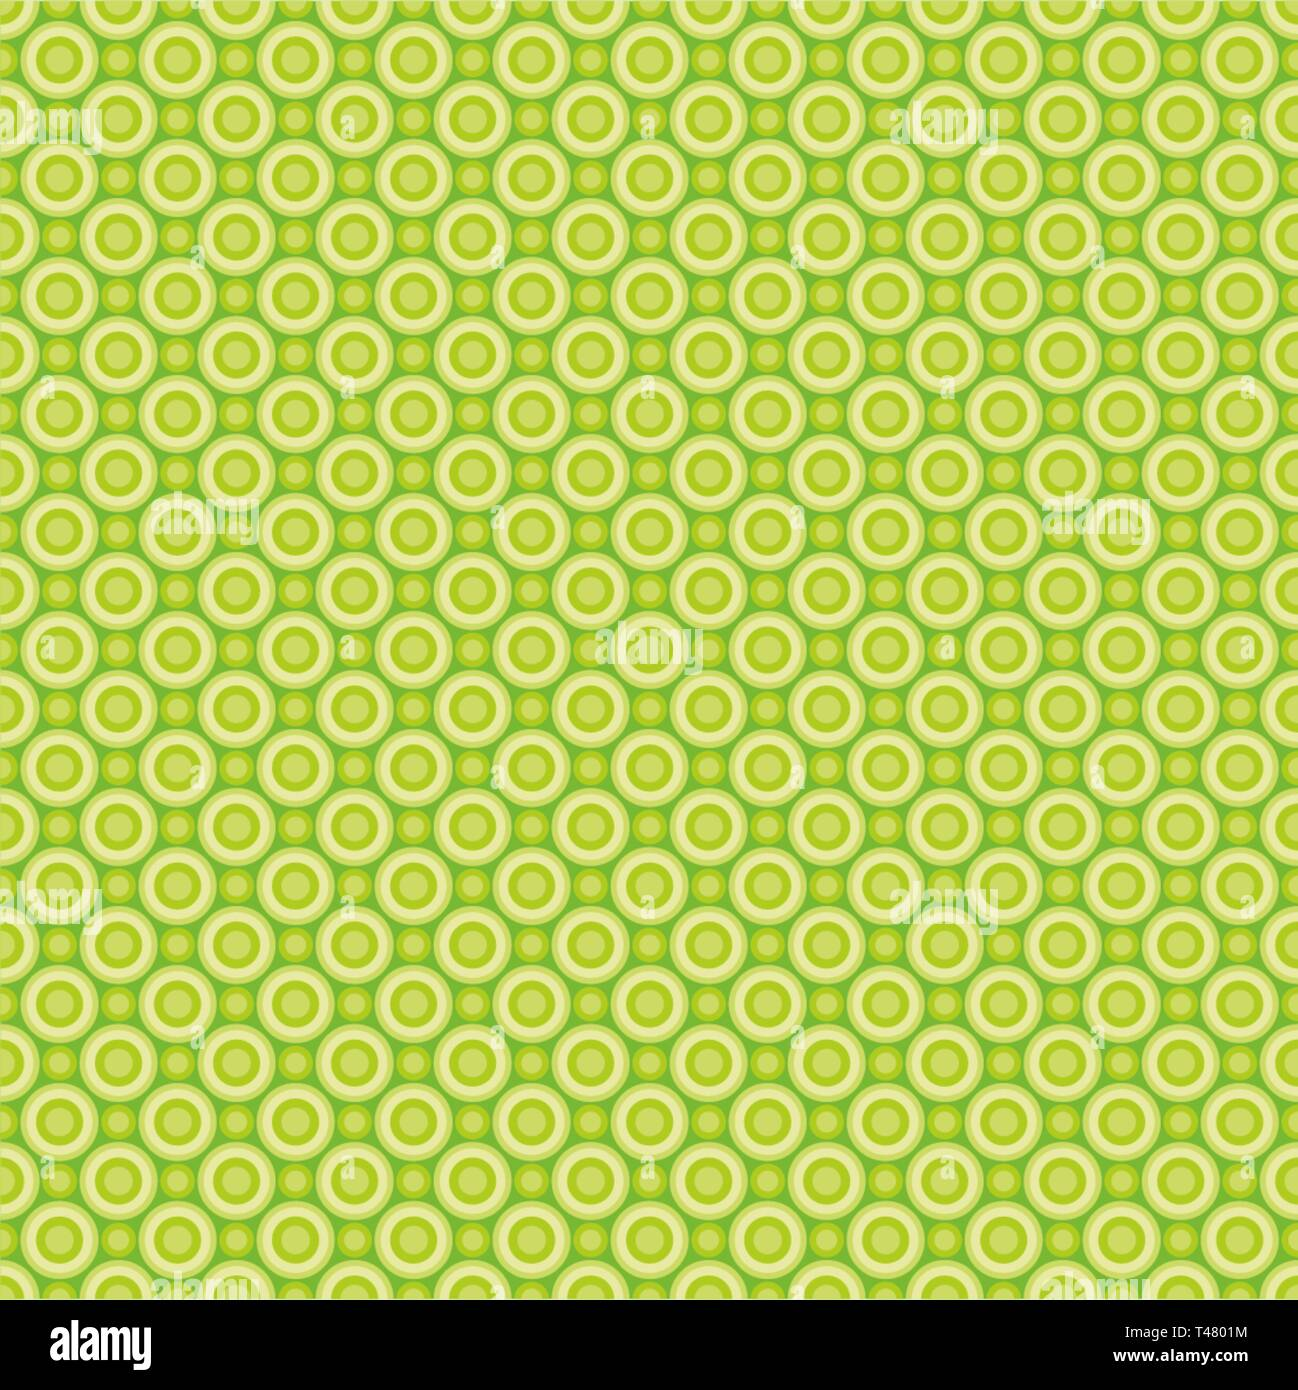 Seamless pattern of abstract yellow-green circles for fabrics, wallpapers, tablecloths, prints and designs.The EPS file (vector) has a pattern that wi - Stock Vector